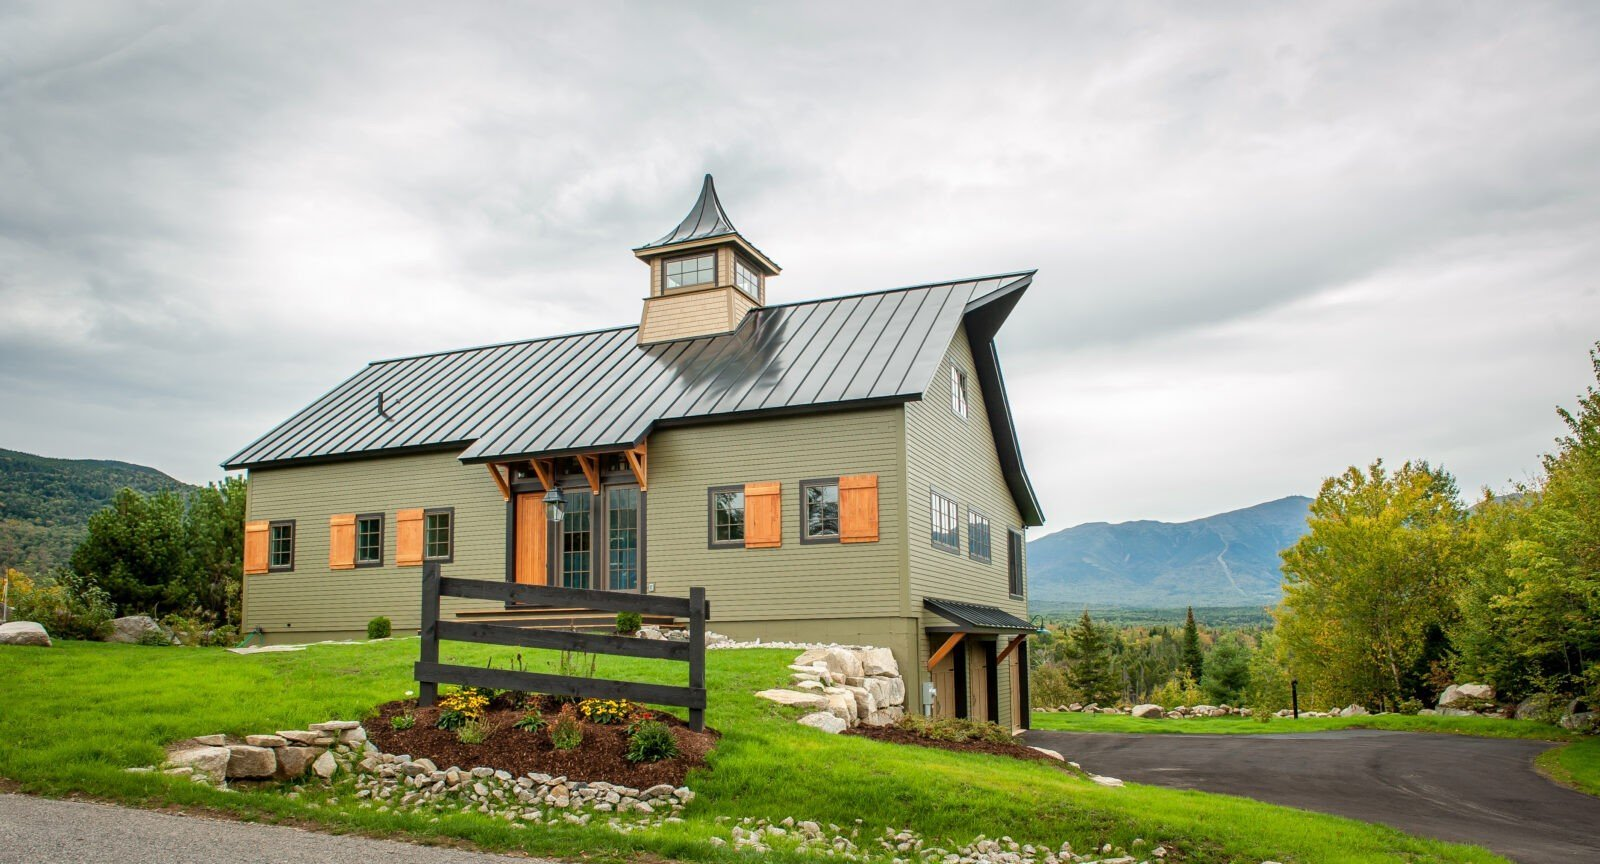 Top notch barn home plans from the ybh design team for House that looks like a barn